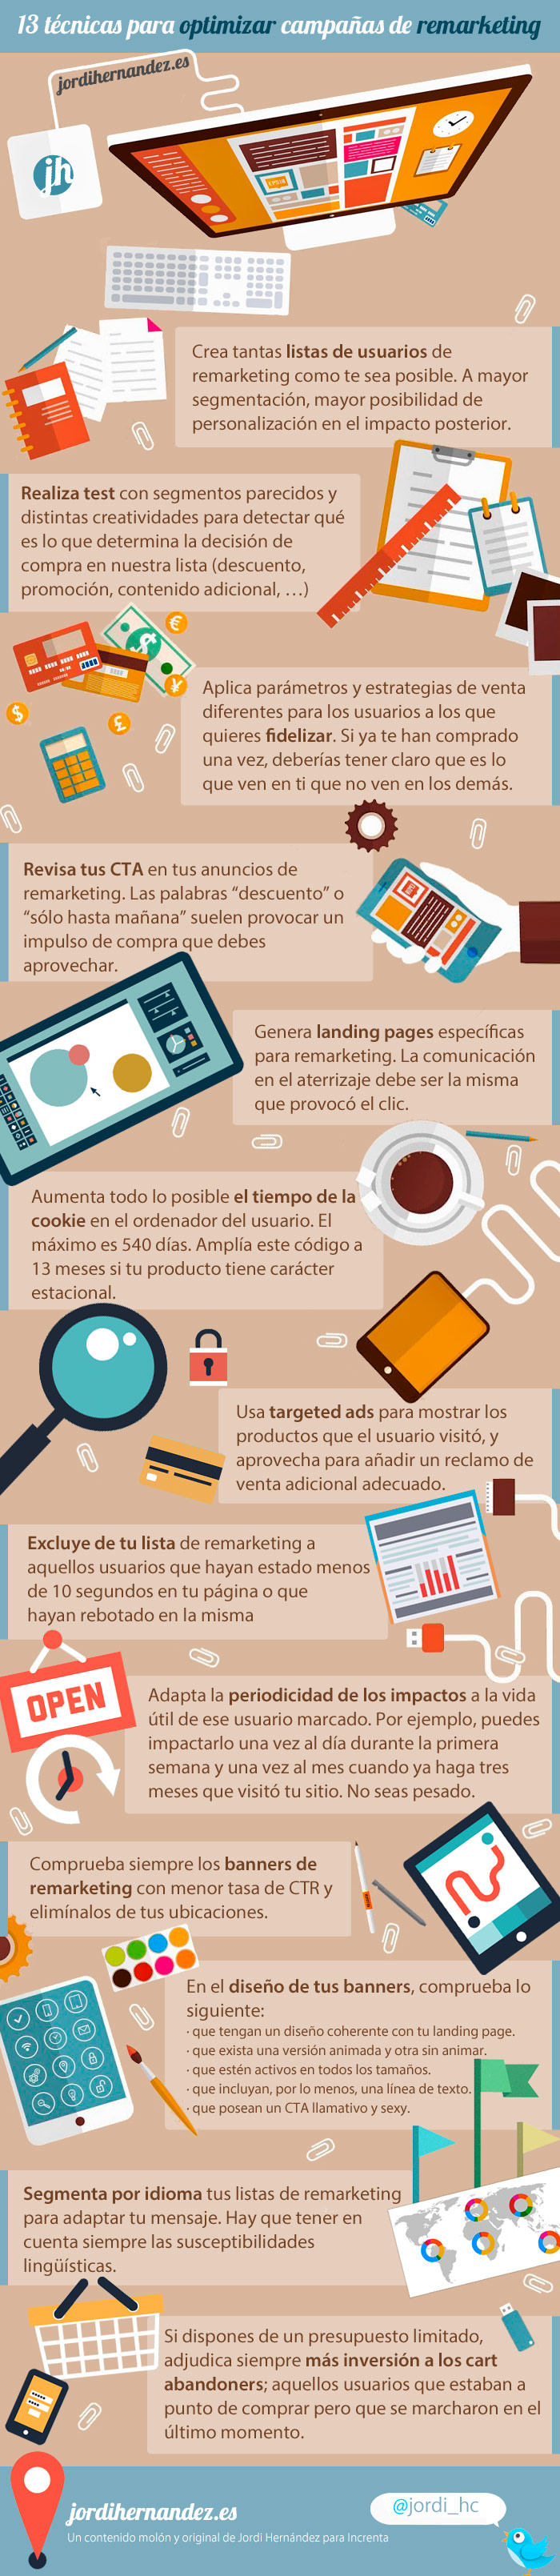 13 técnicas para optimizar campañas de remarketing